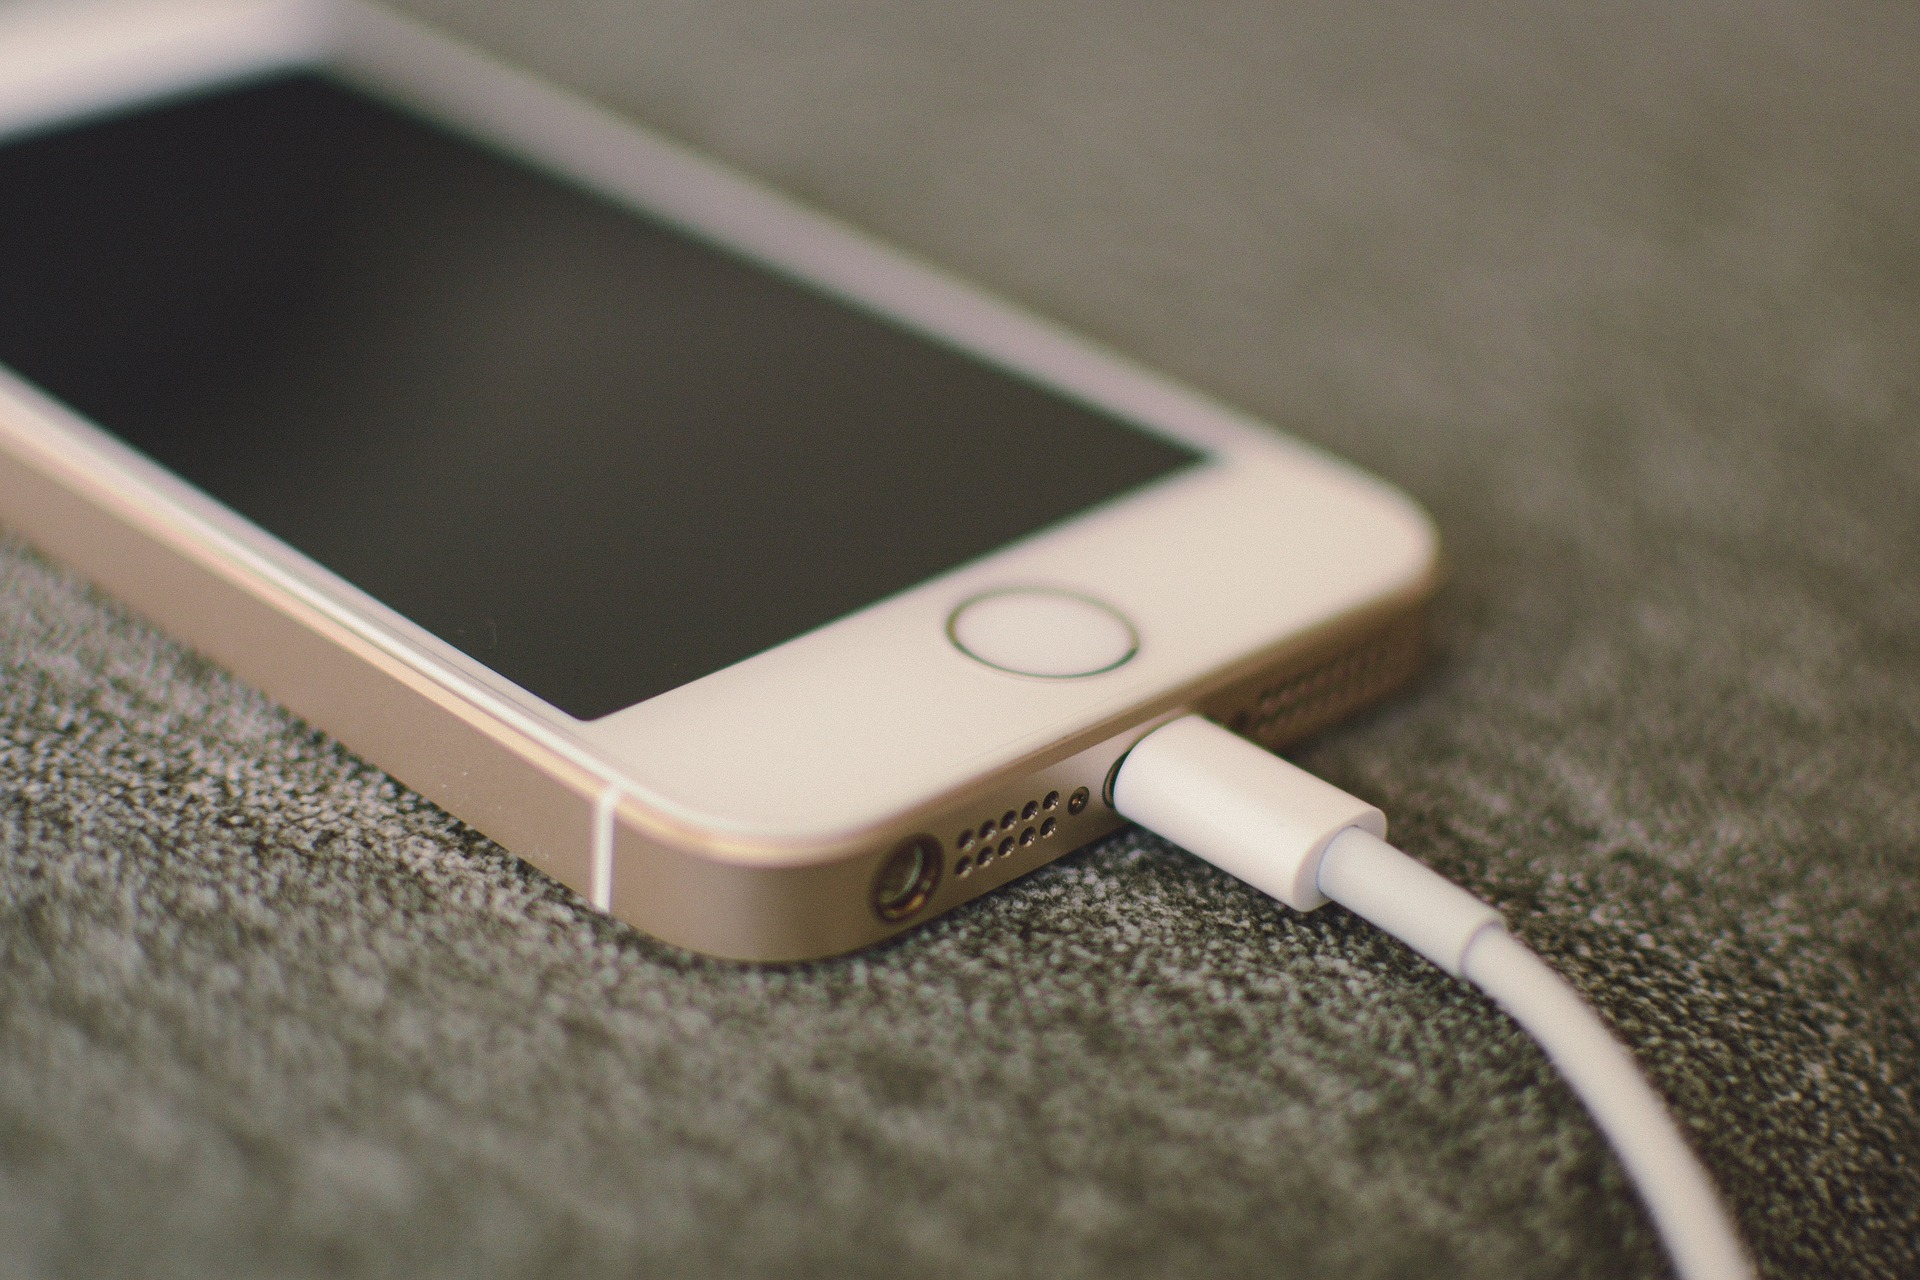 Experts warn against the use of public charging stations phone trends juice